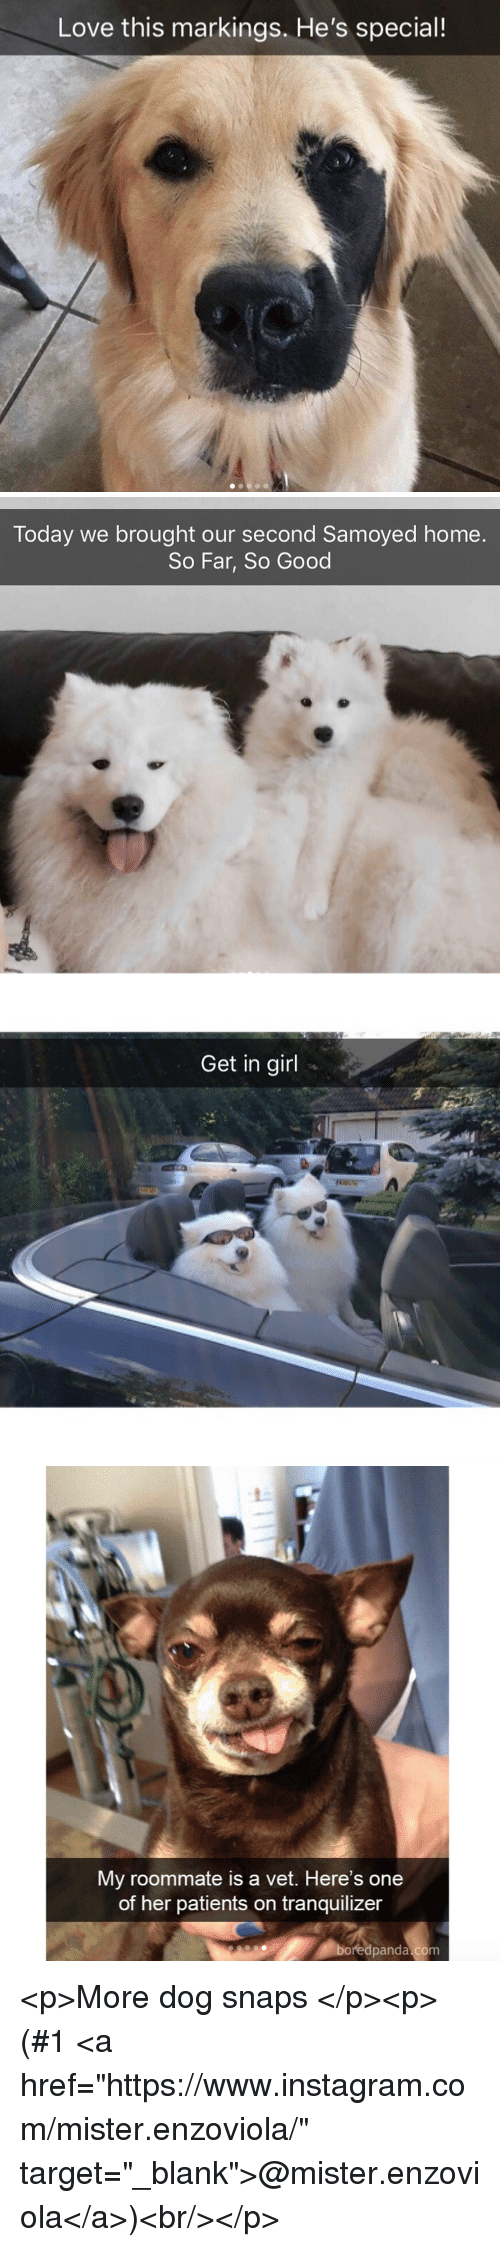 """Instagram, Love, and Roommate: Love this markings. He's special!   Today we brought our second Samoyed home.  So Far, So Good   Get in girl   My roommate is a vet. Here's one  of her patients on tranquilizer  boredpanda.com <p>More dog snaps</p><p>(#1<a href=""""https://www.instagram.com/mister.enzoviola/"""" target=""""_blank"""">@mister.enzoviola</a>)<br/></p>"""